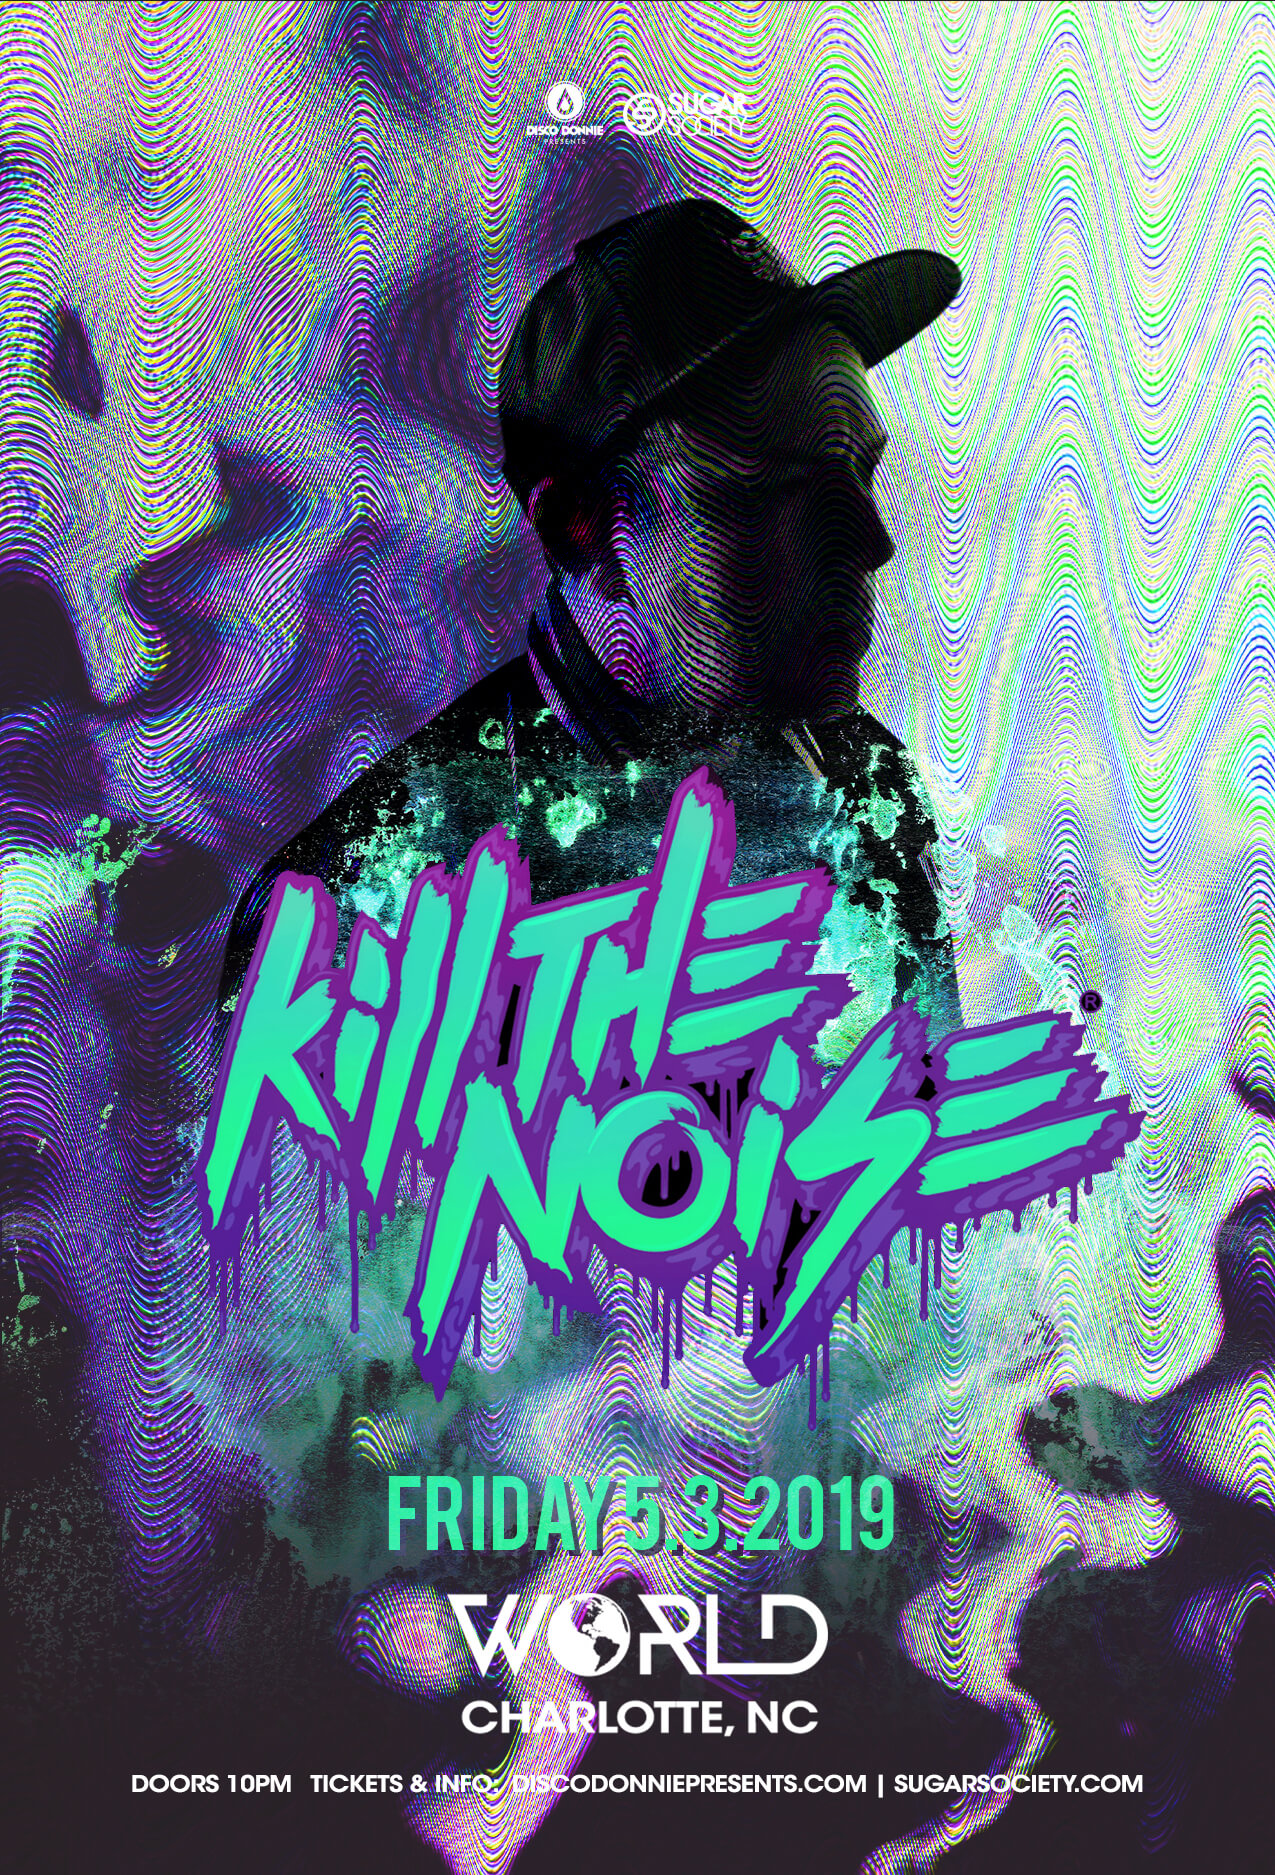 Kill The Noise in Charlotte